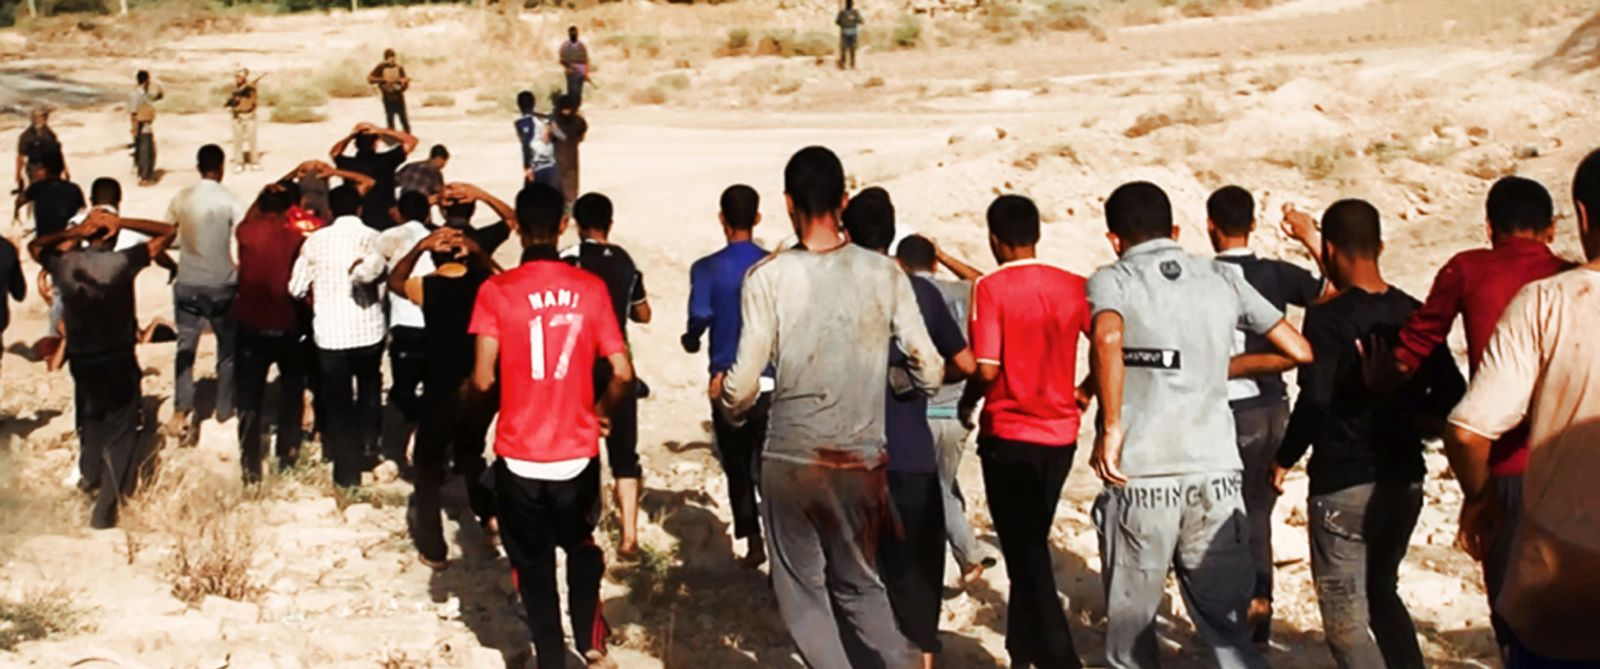 PHOTO: This image posted on a militant website on Saturday, June 14, 2014, appears to show militants from the al-Qaida-inspired Islamic State of Iraq and the Levant (ISIL) leading captured Iraqi soldiers wearing plain clothes to an open field.